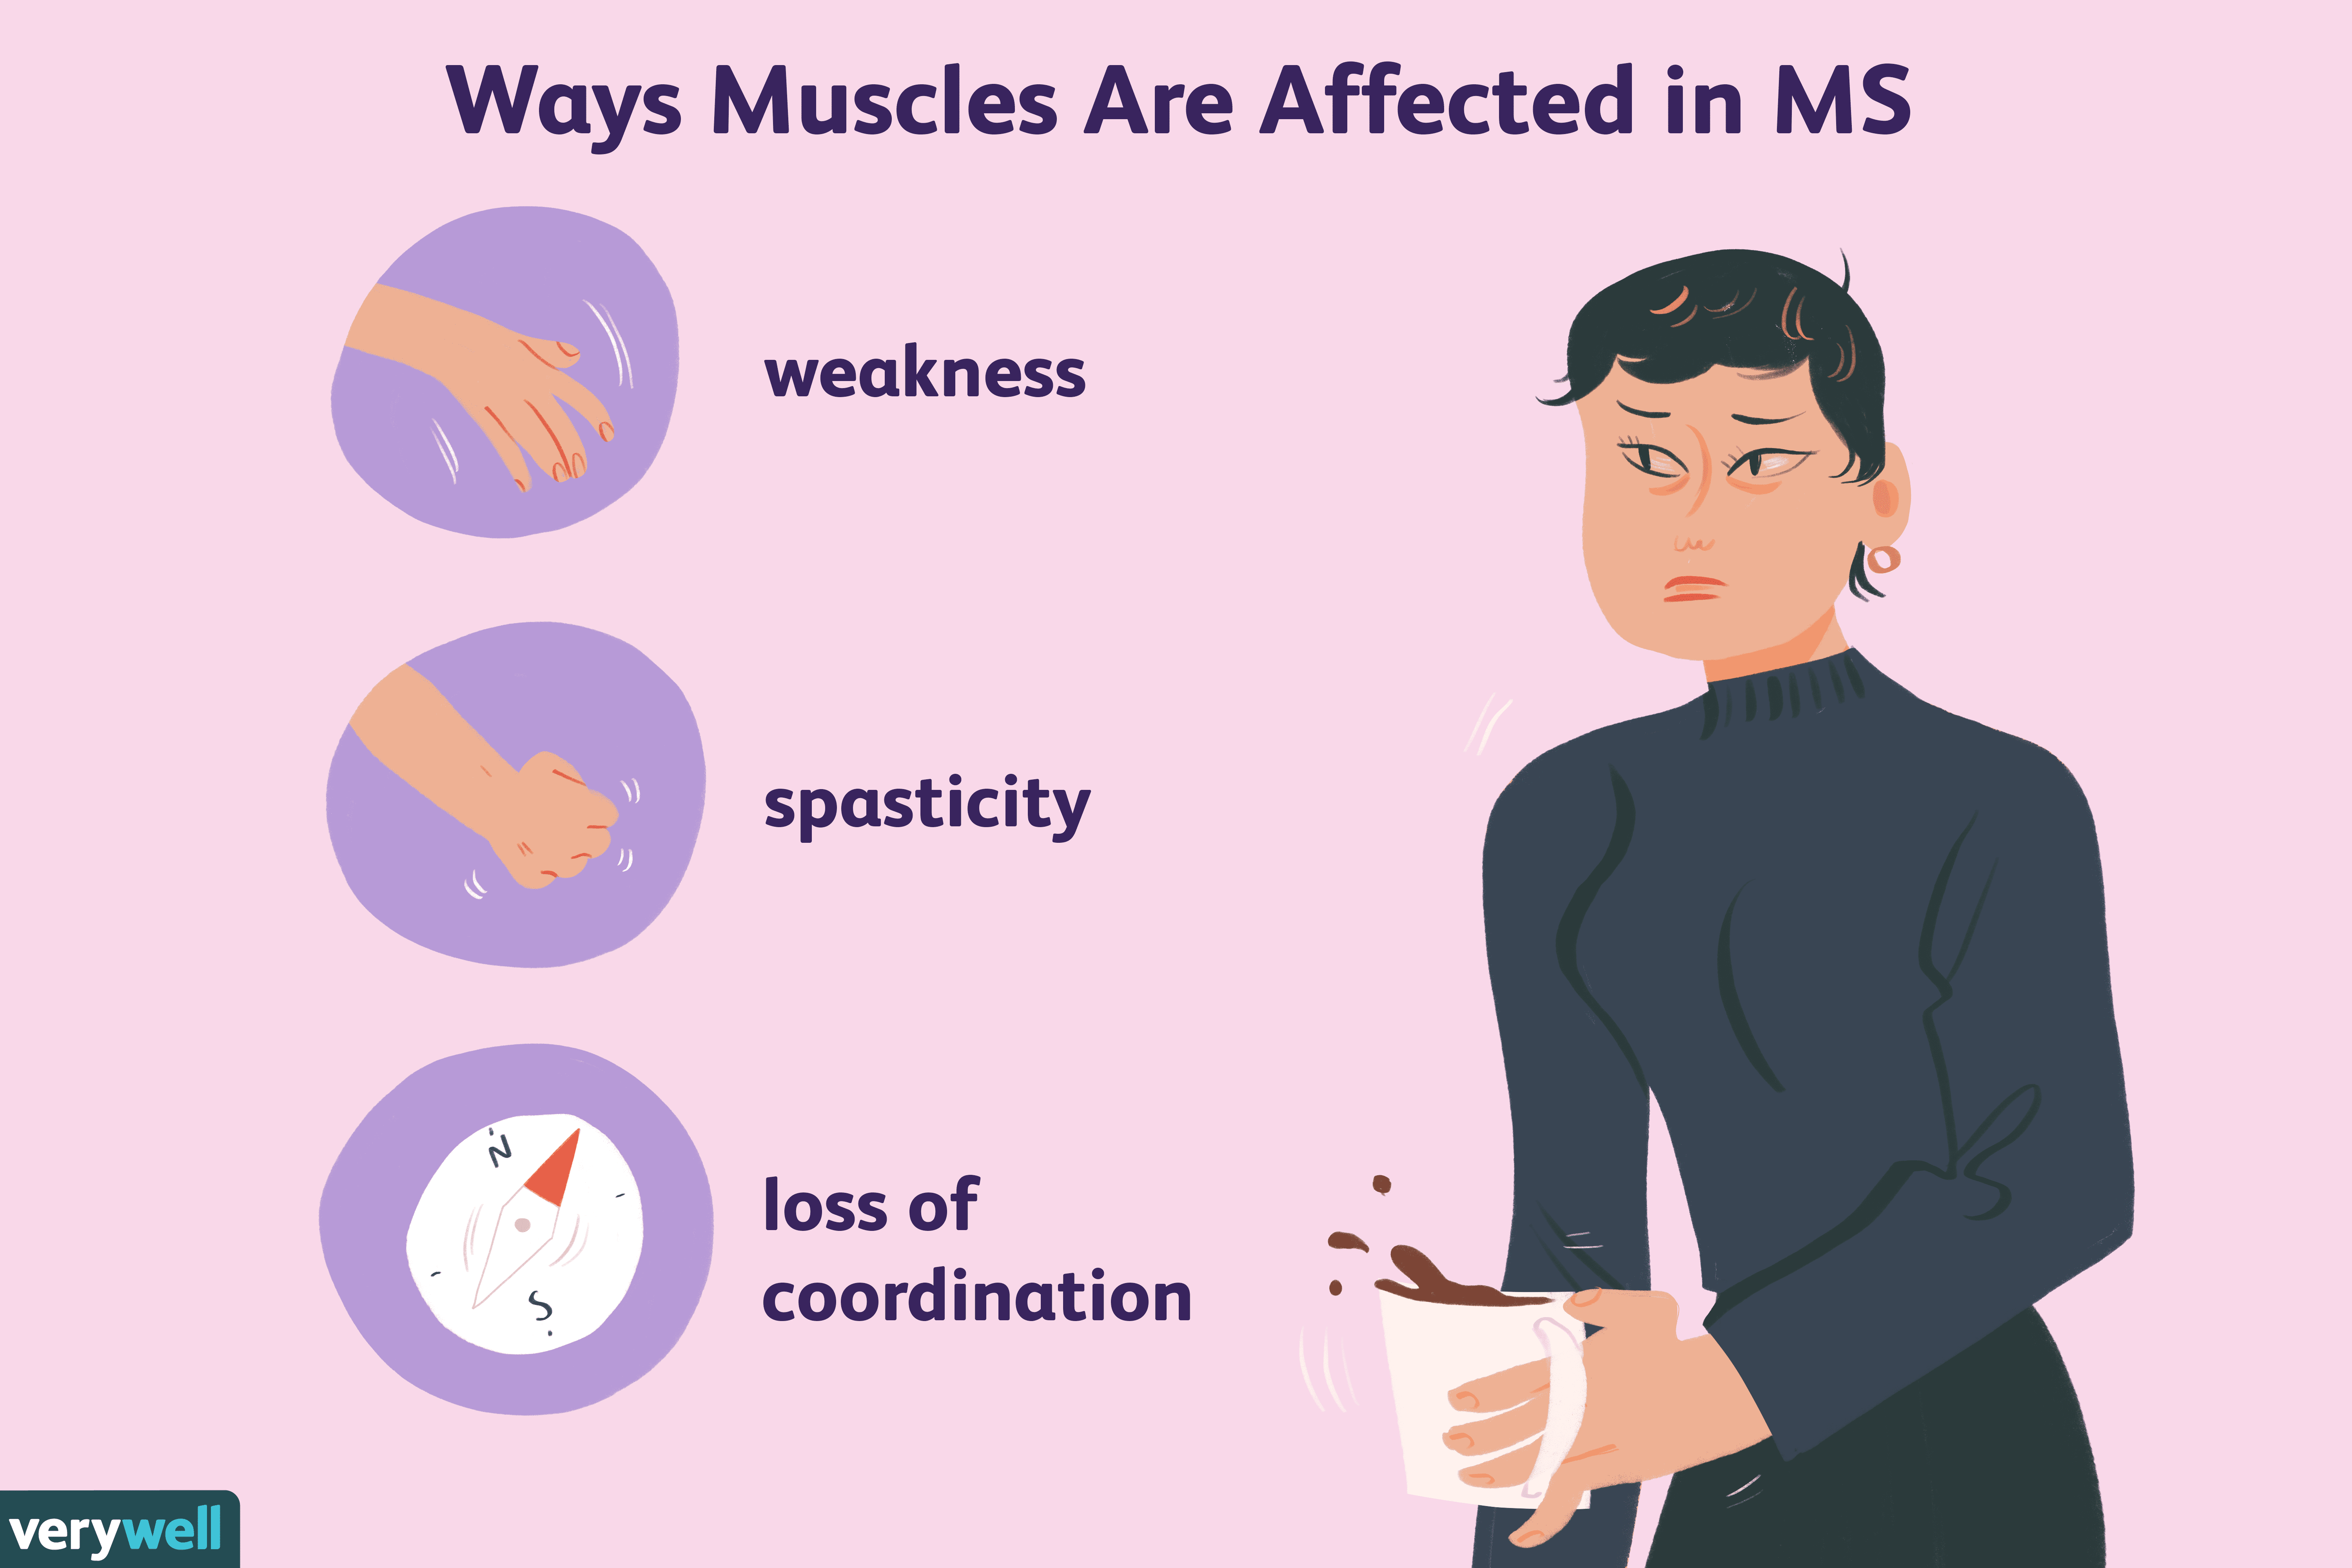 Ways Muscles Are Affected in MS